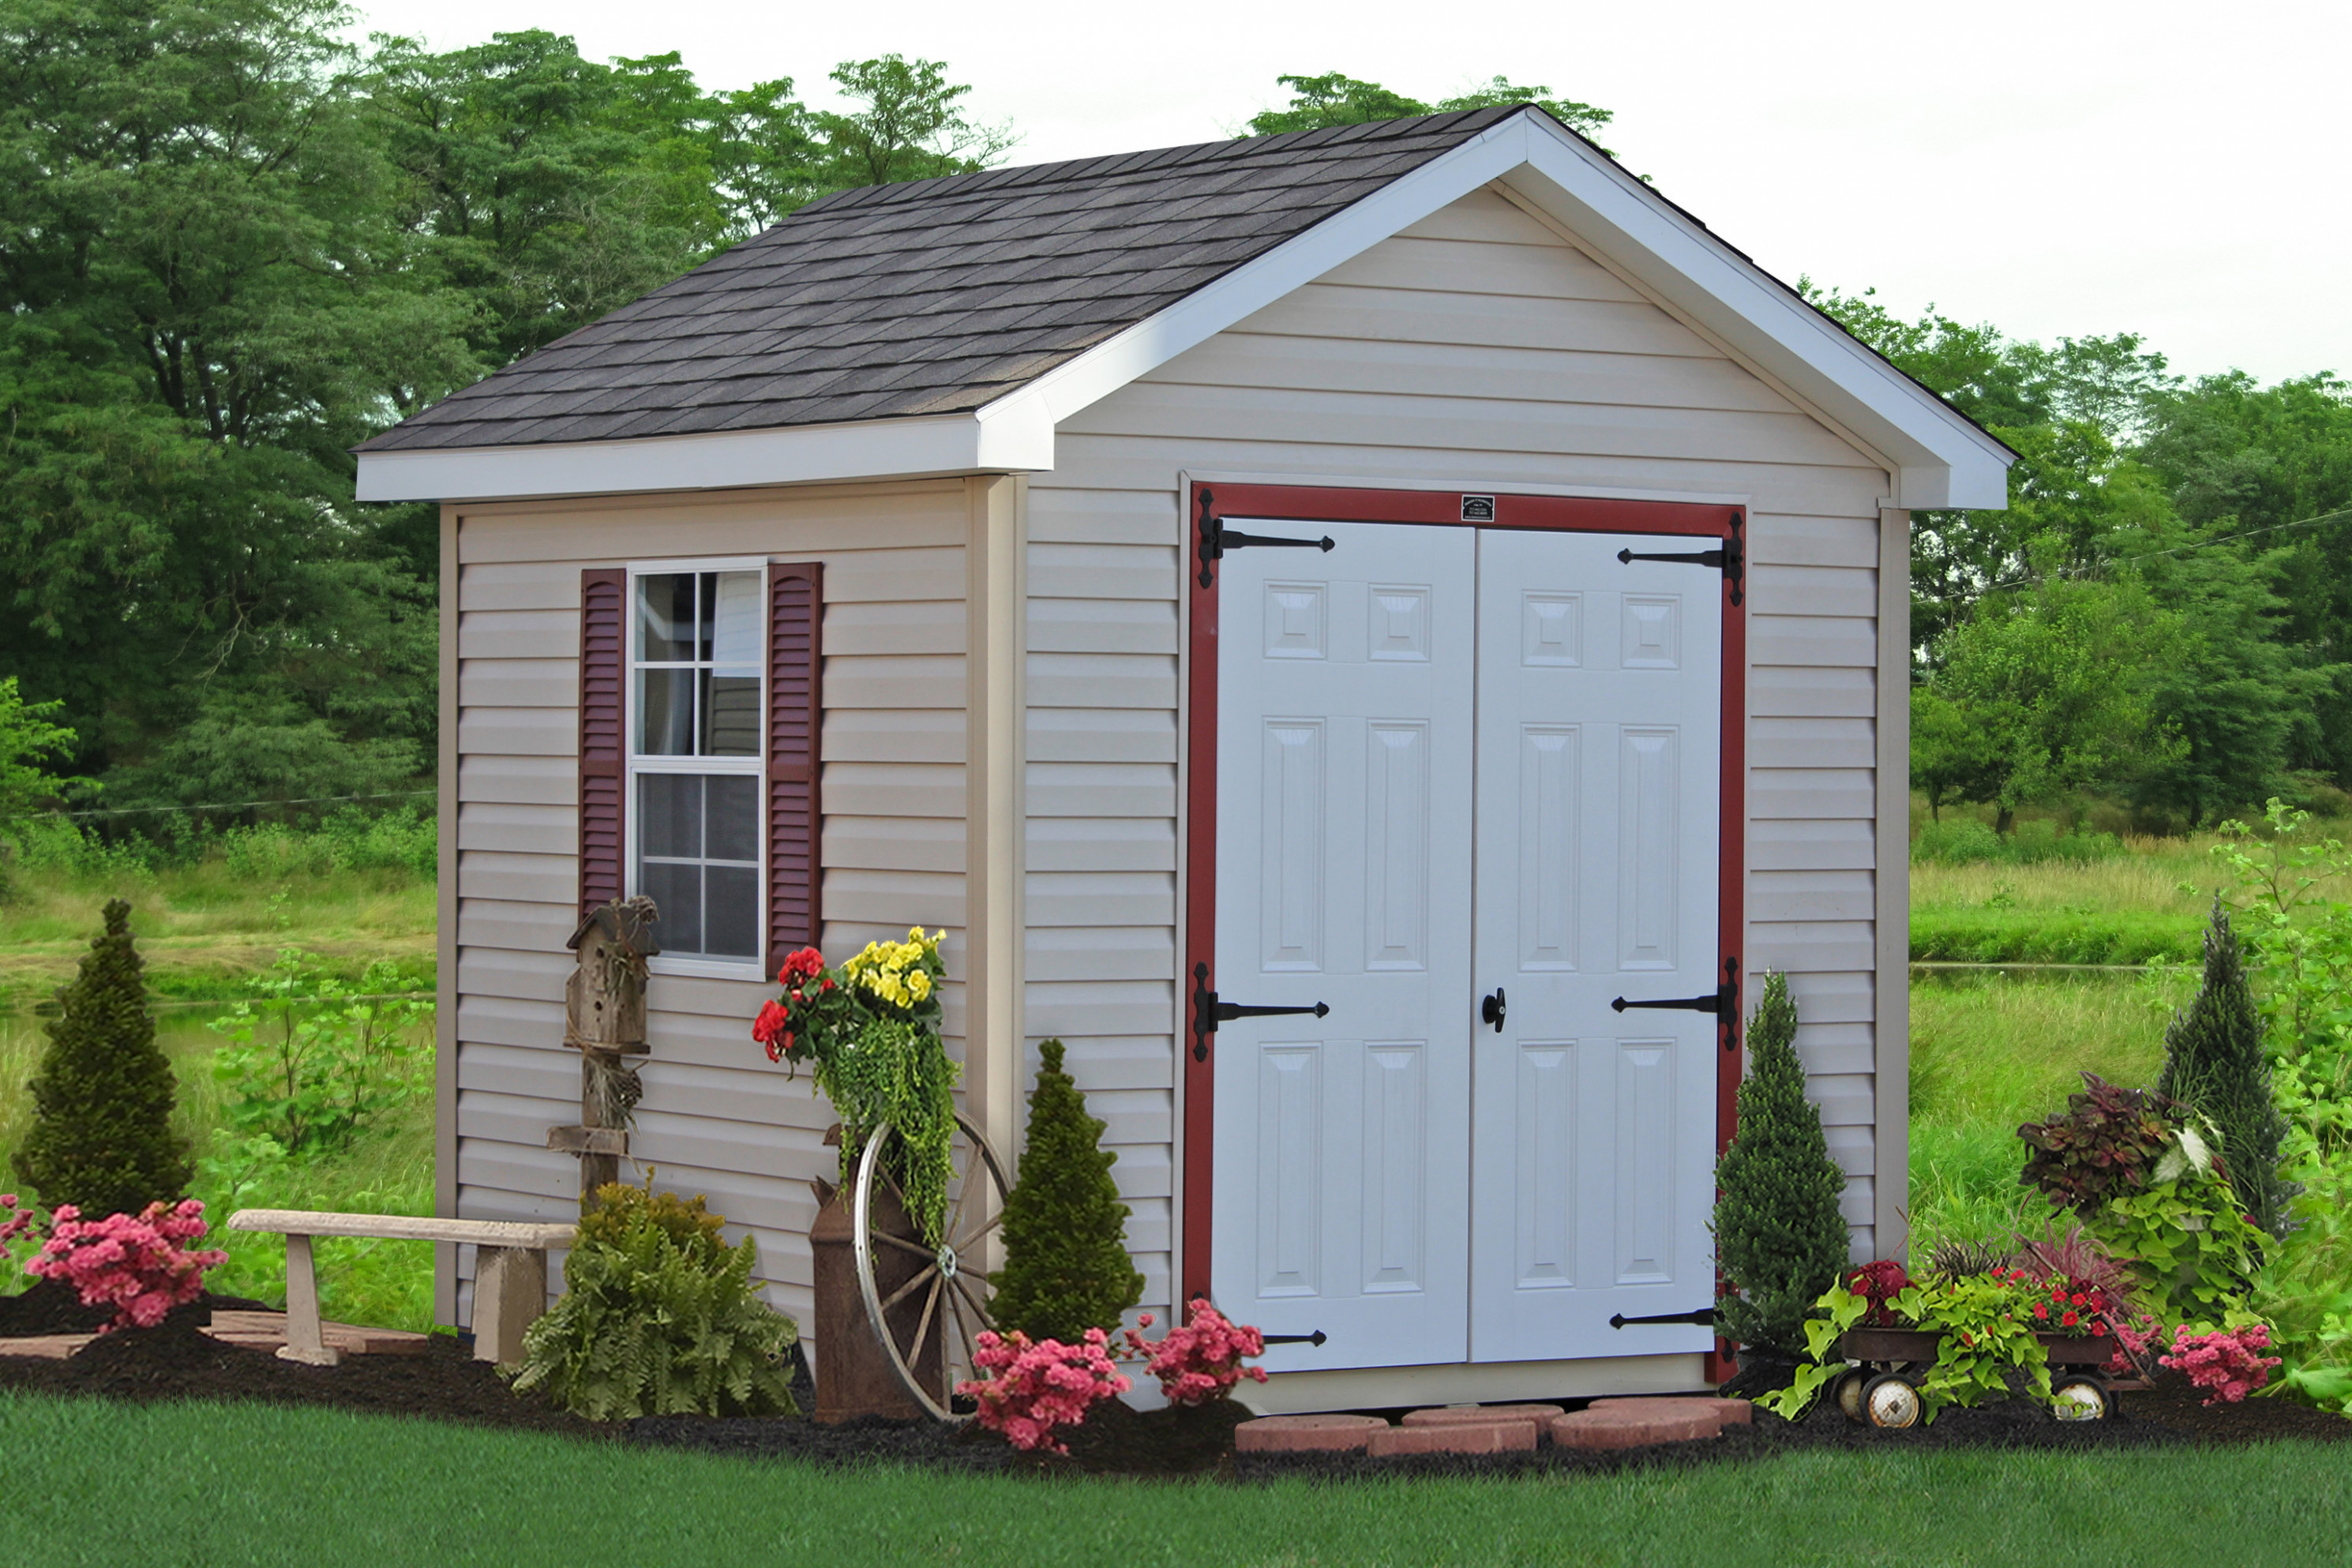 Buy Classic Wooden Storage Sheds In Lancaster, PA Amish Wooden Carports